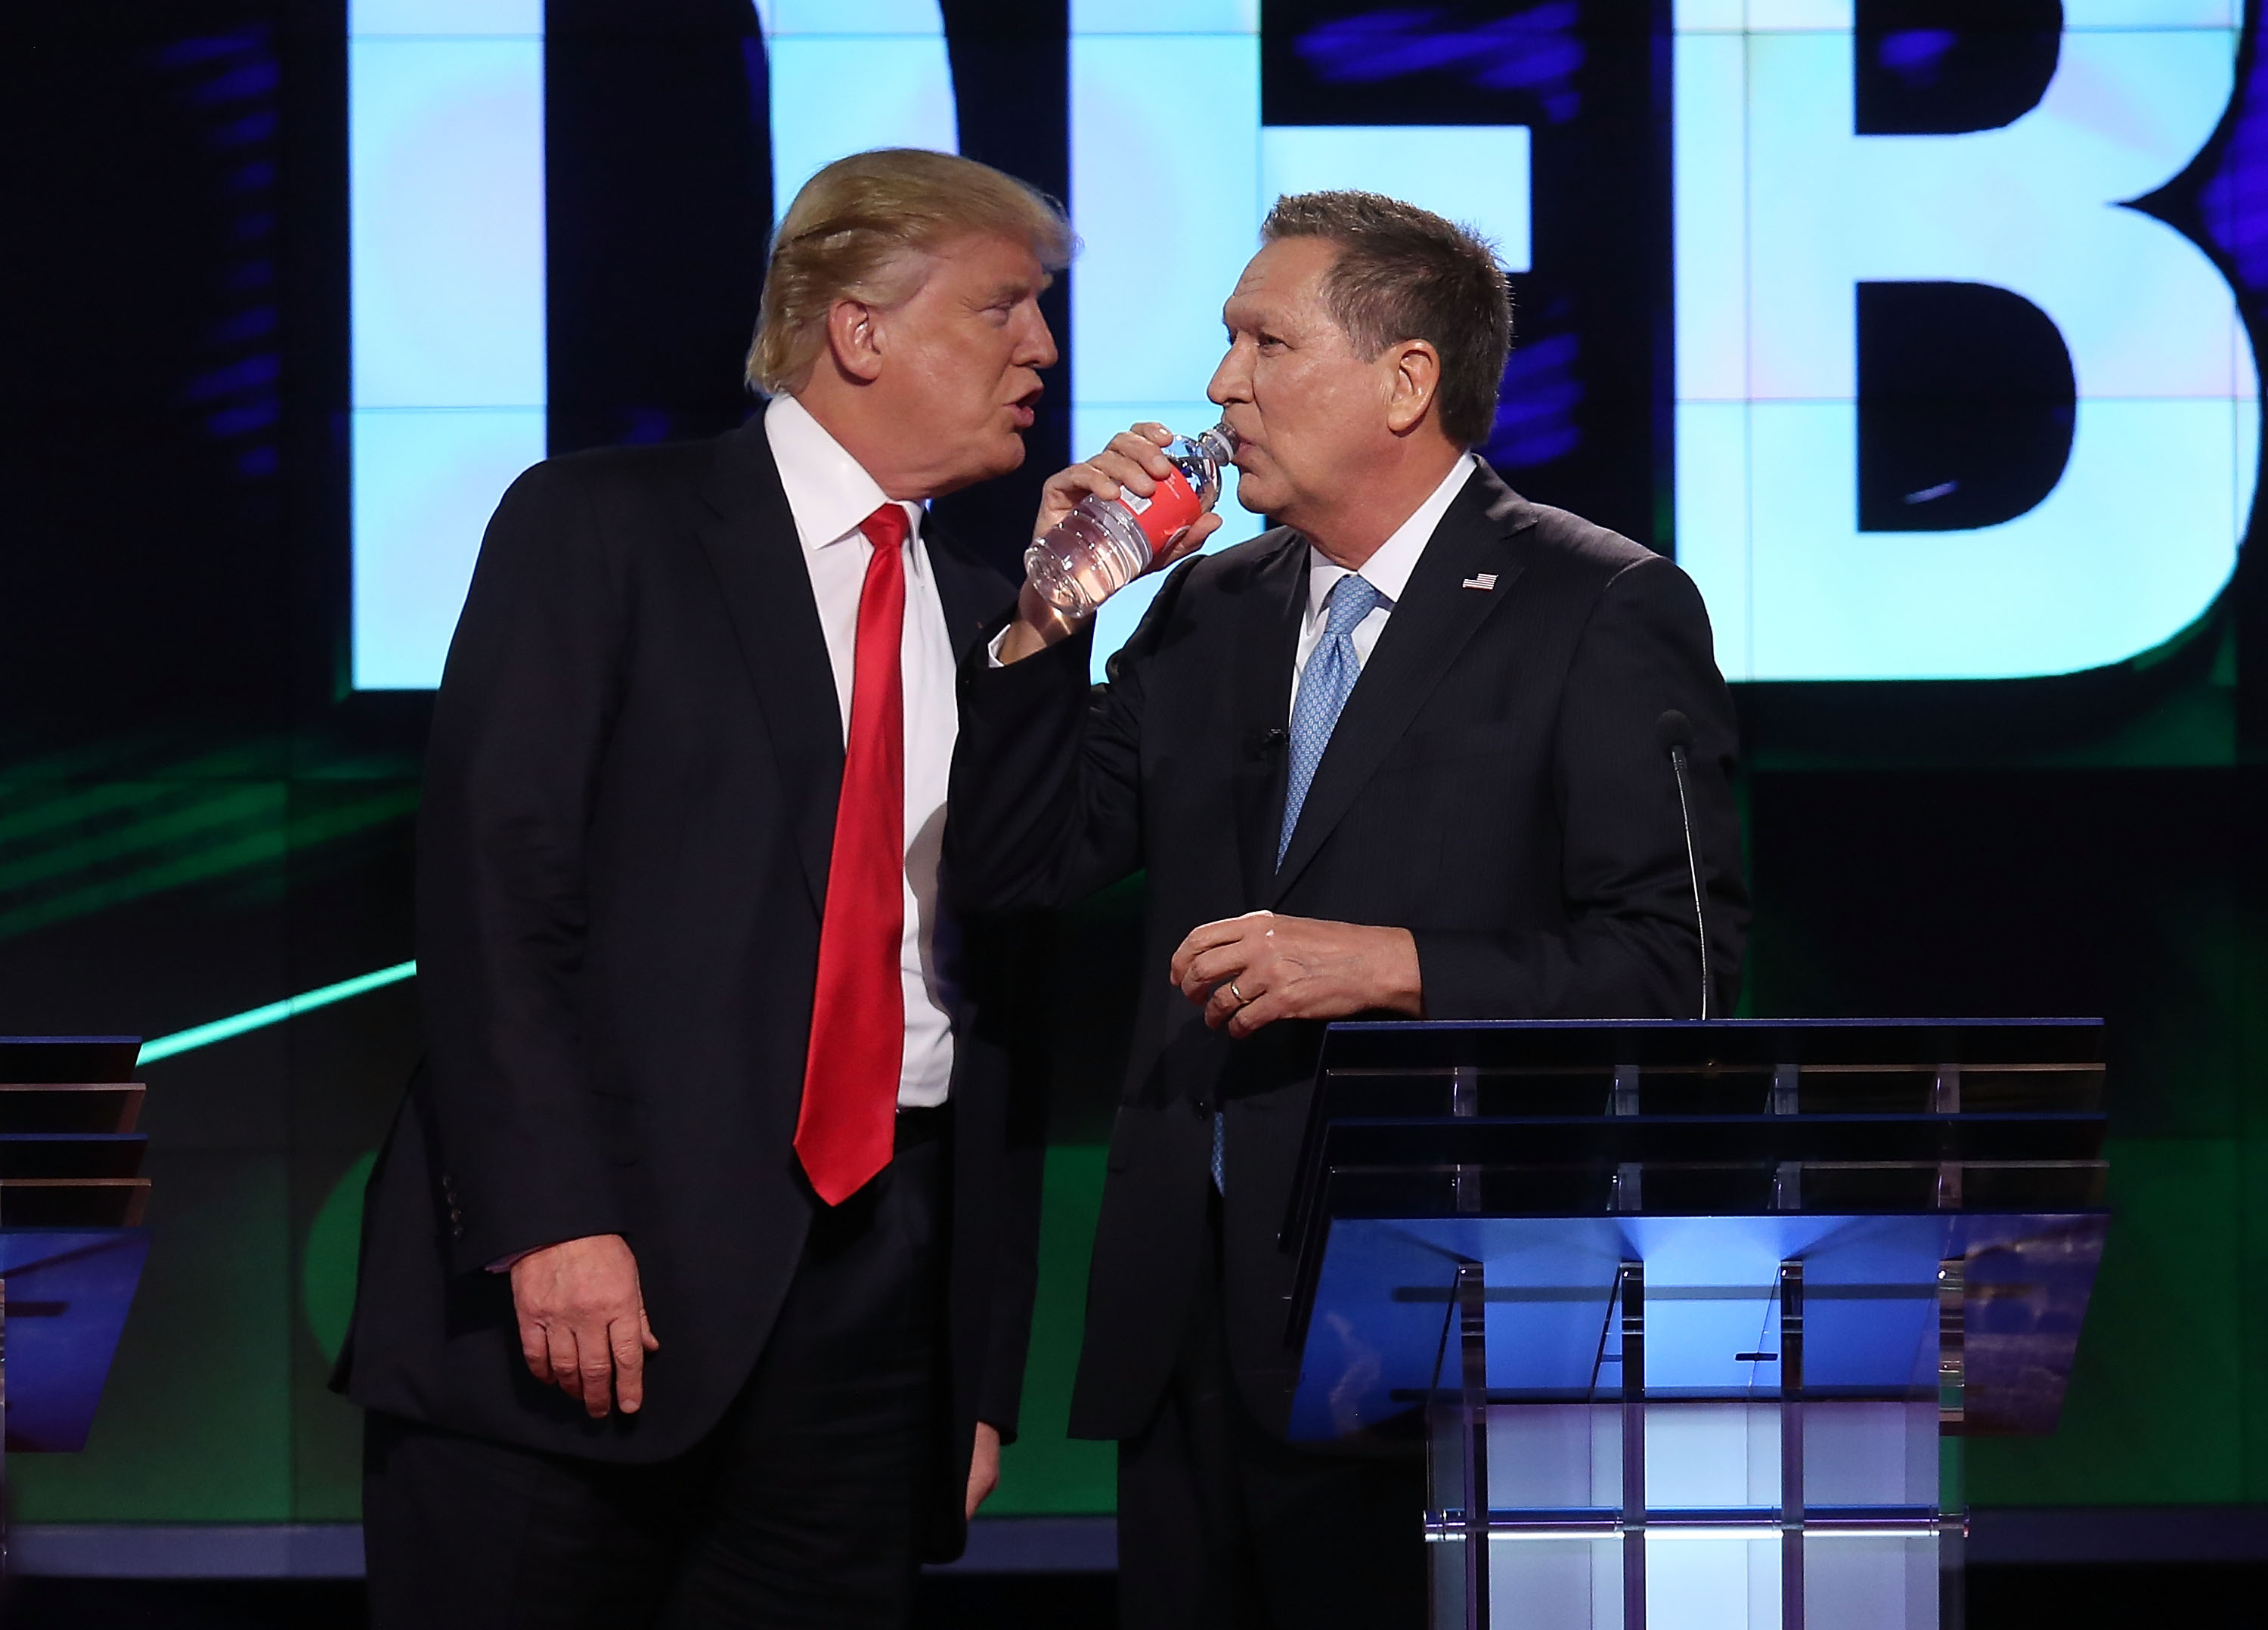 Republican presidential candidates, Donald Trump and Ohio Gov. John Kasich are seen during a broadcast break of the CNN, Salem Media Group, The Washington Times Republican Presidential Primary Debate on the campus of the University of Miami on March 10, 2016 in Coral Gables, Florida. (Photo by Joe Raedle/Getty Images)